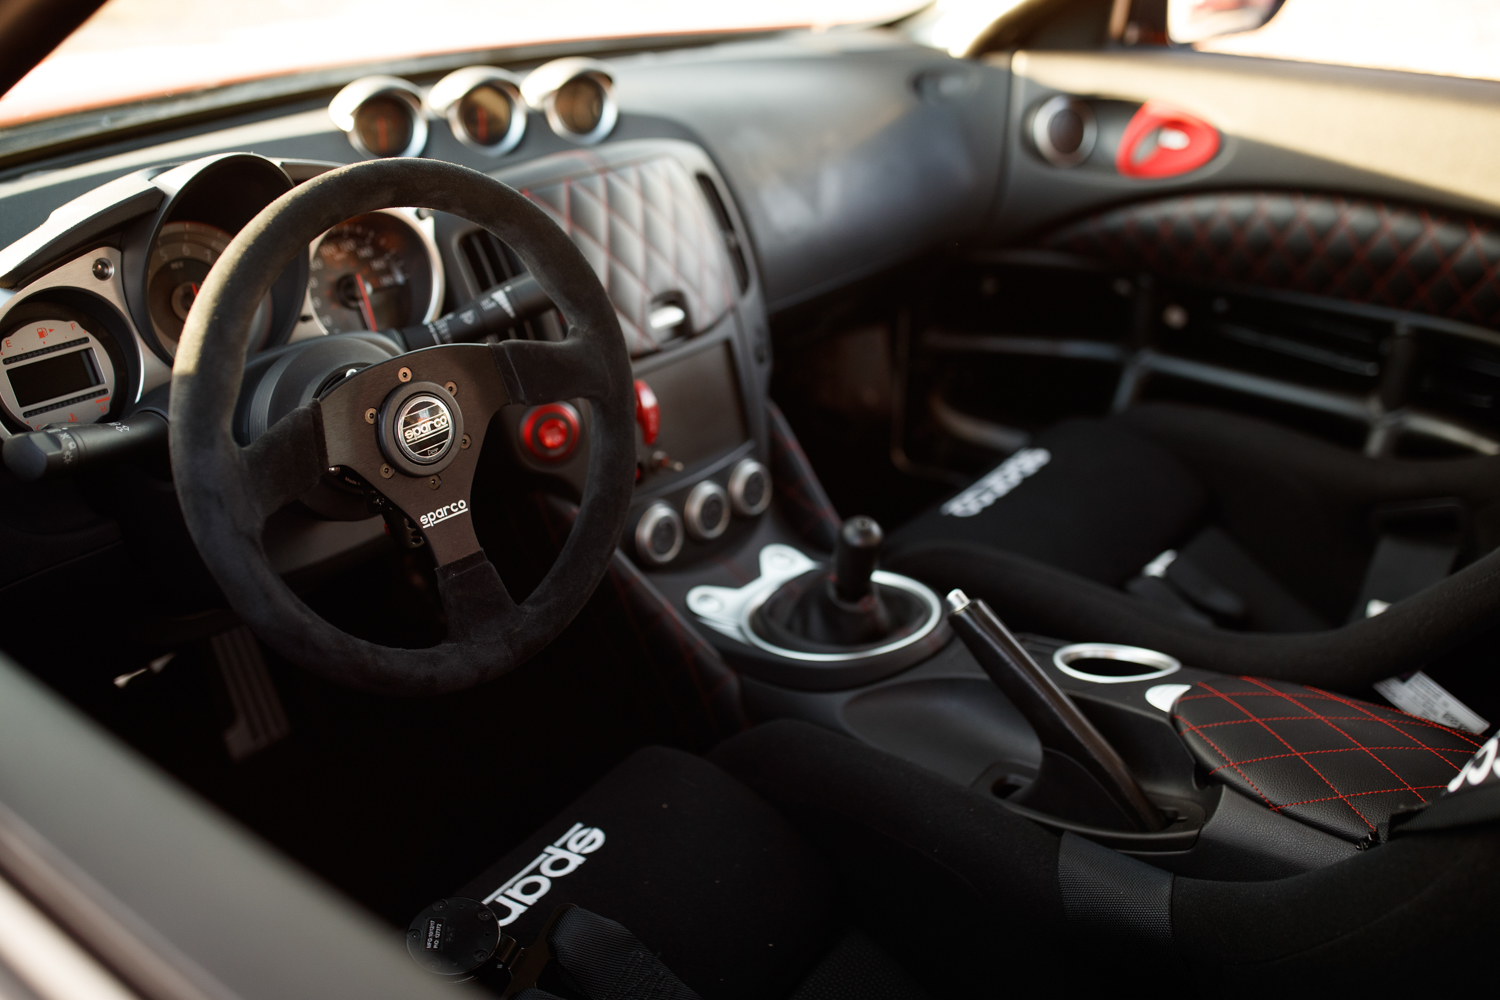 Nissan 370Z Project Clubsport 23 interior